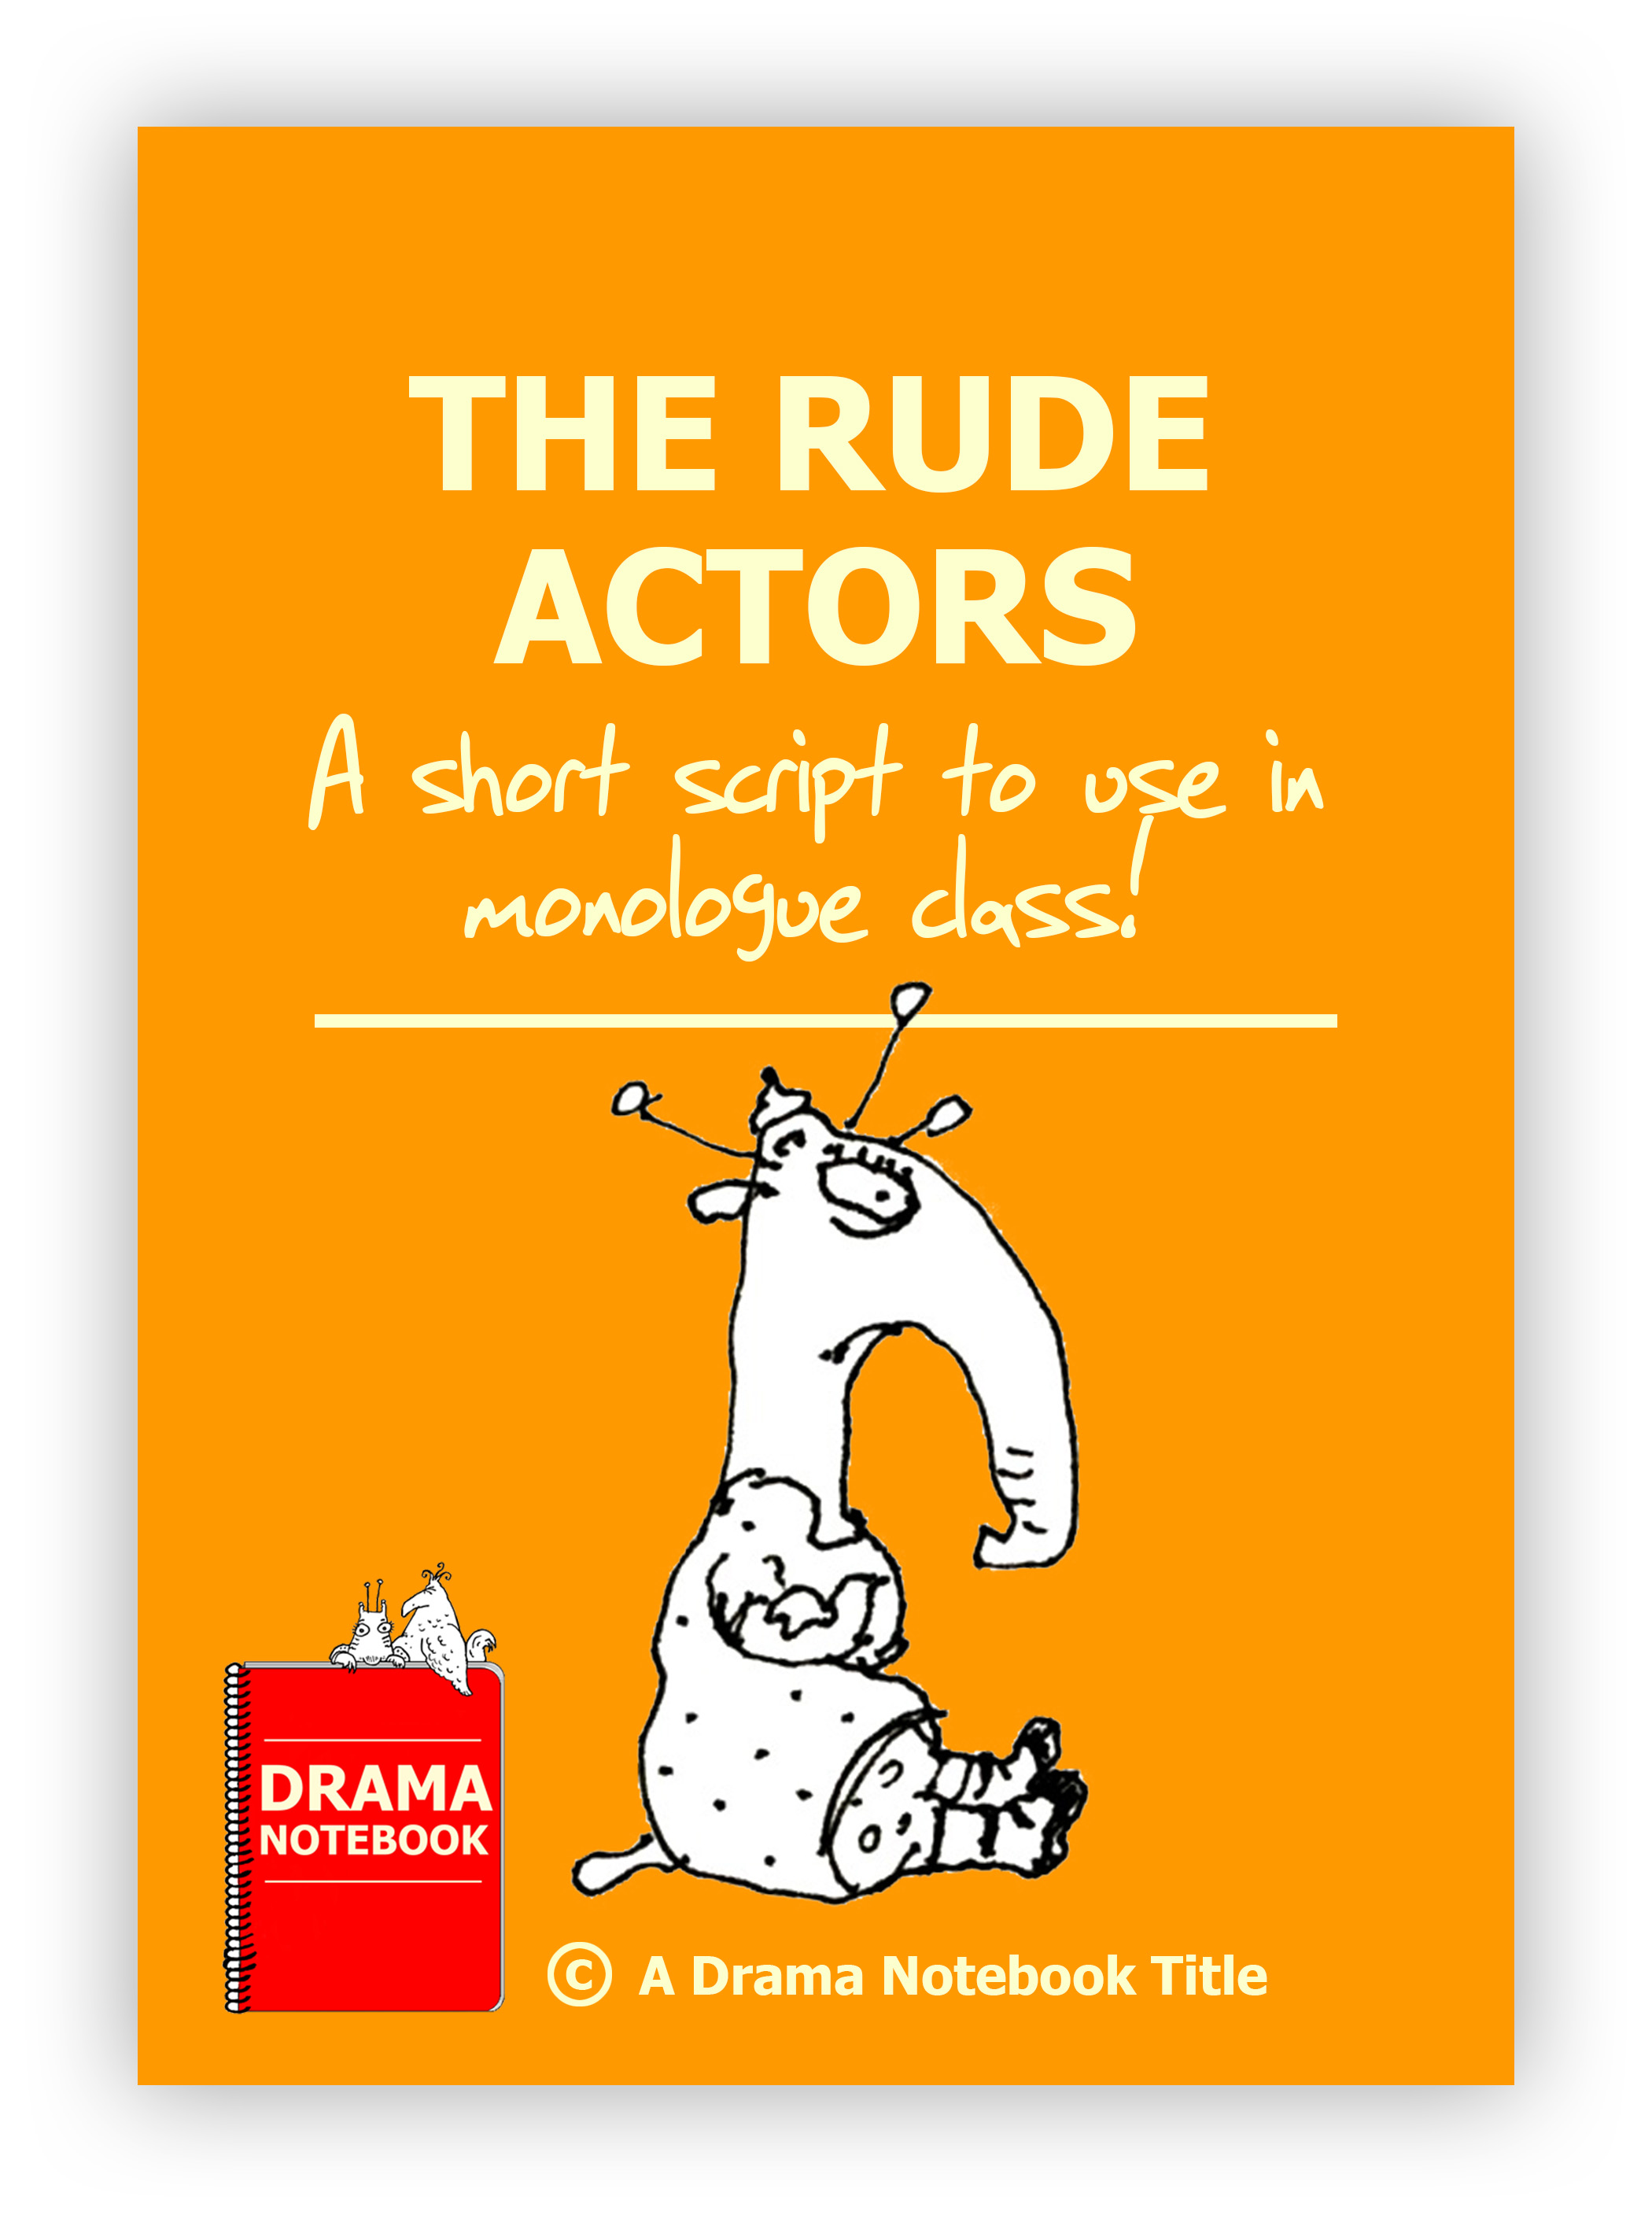 The Rude Actors